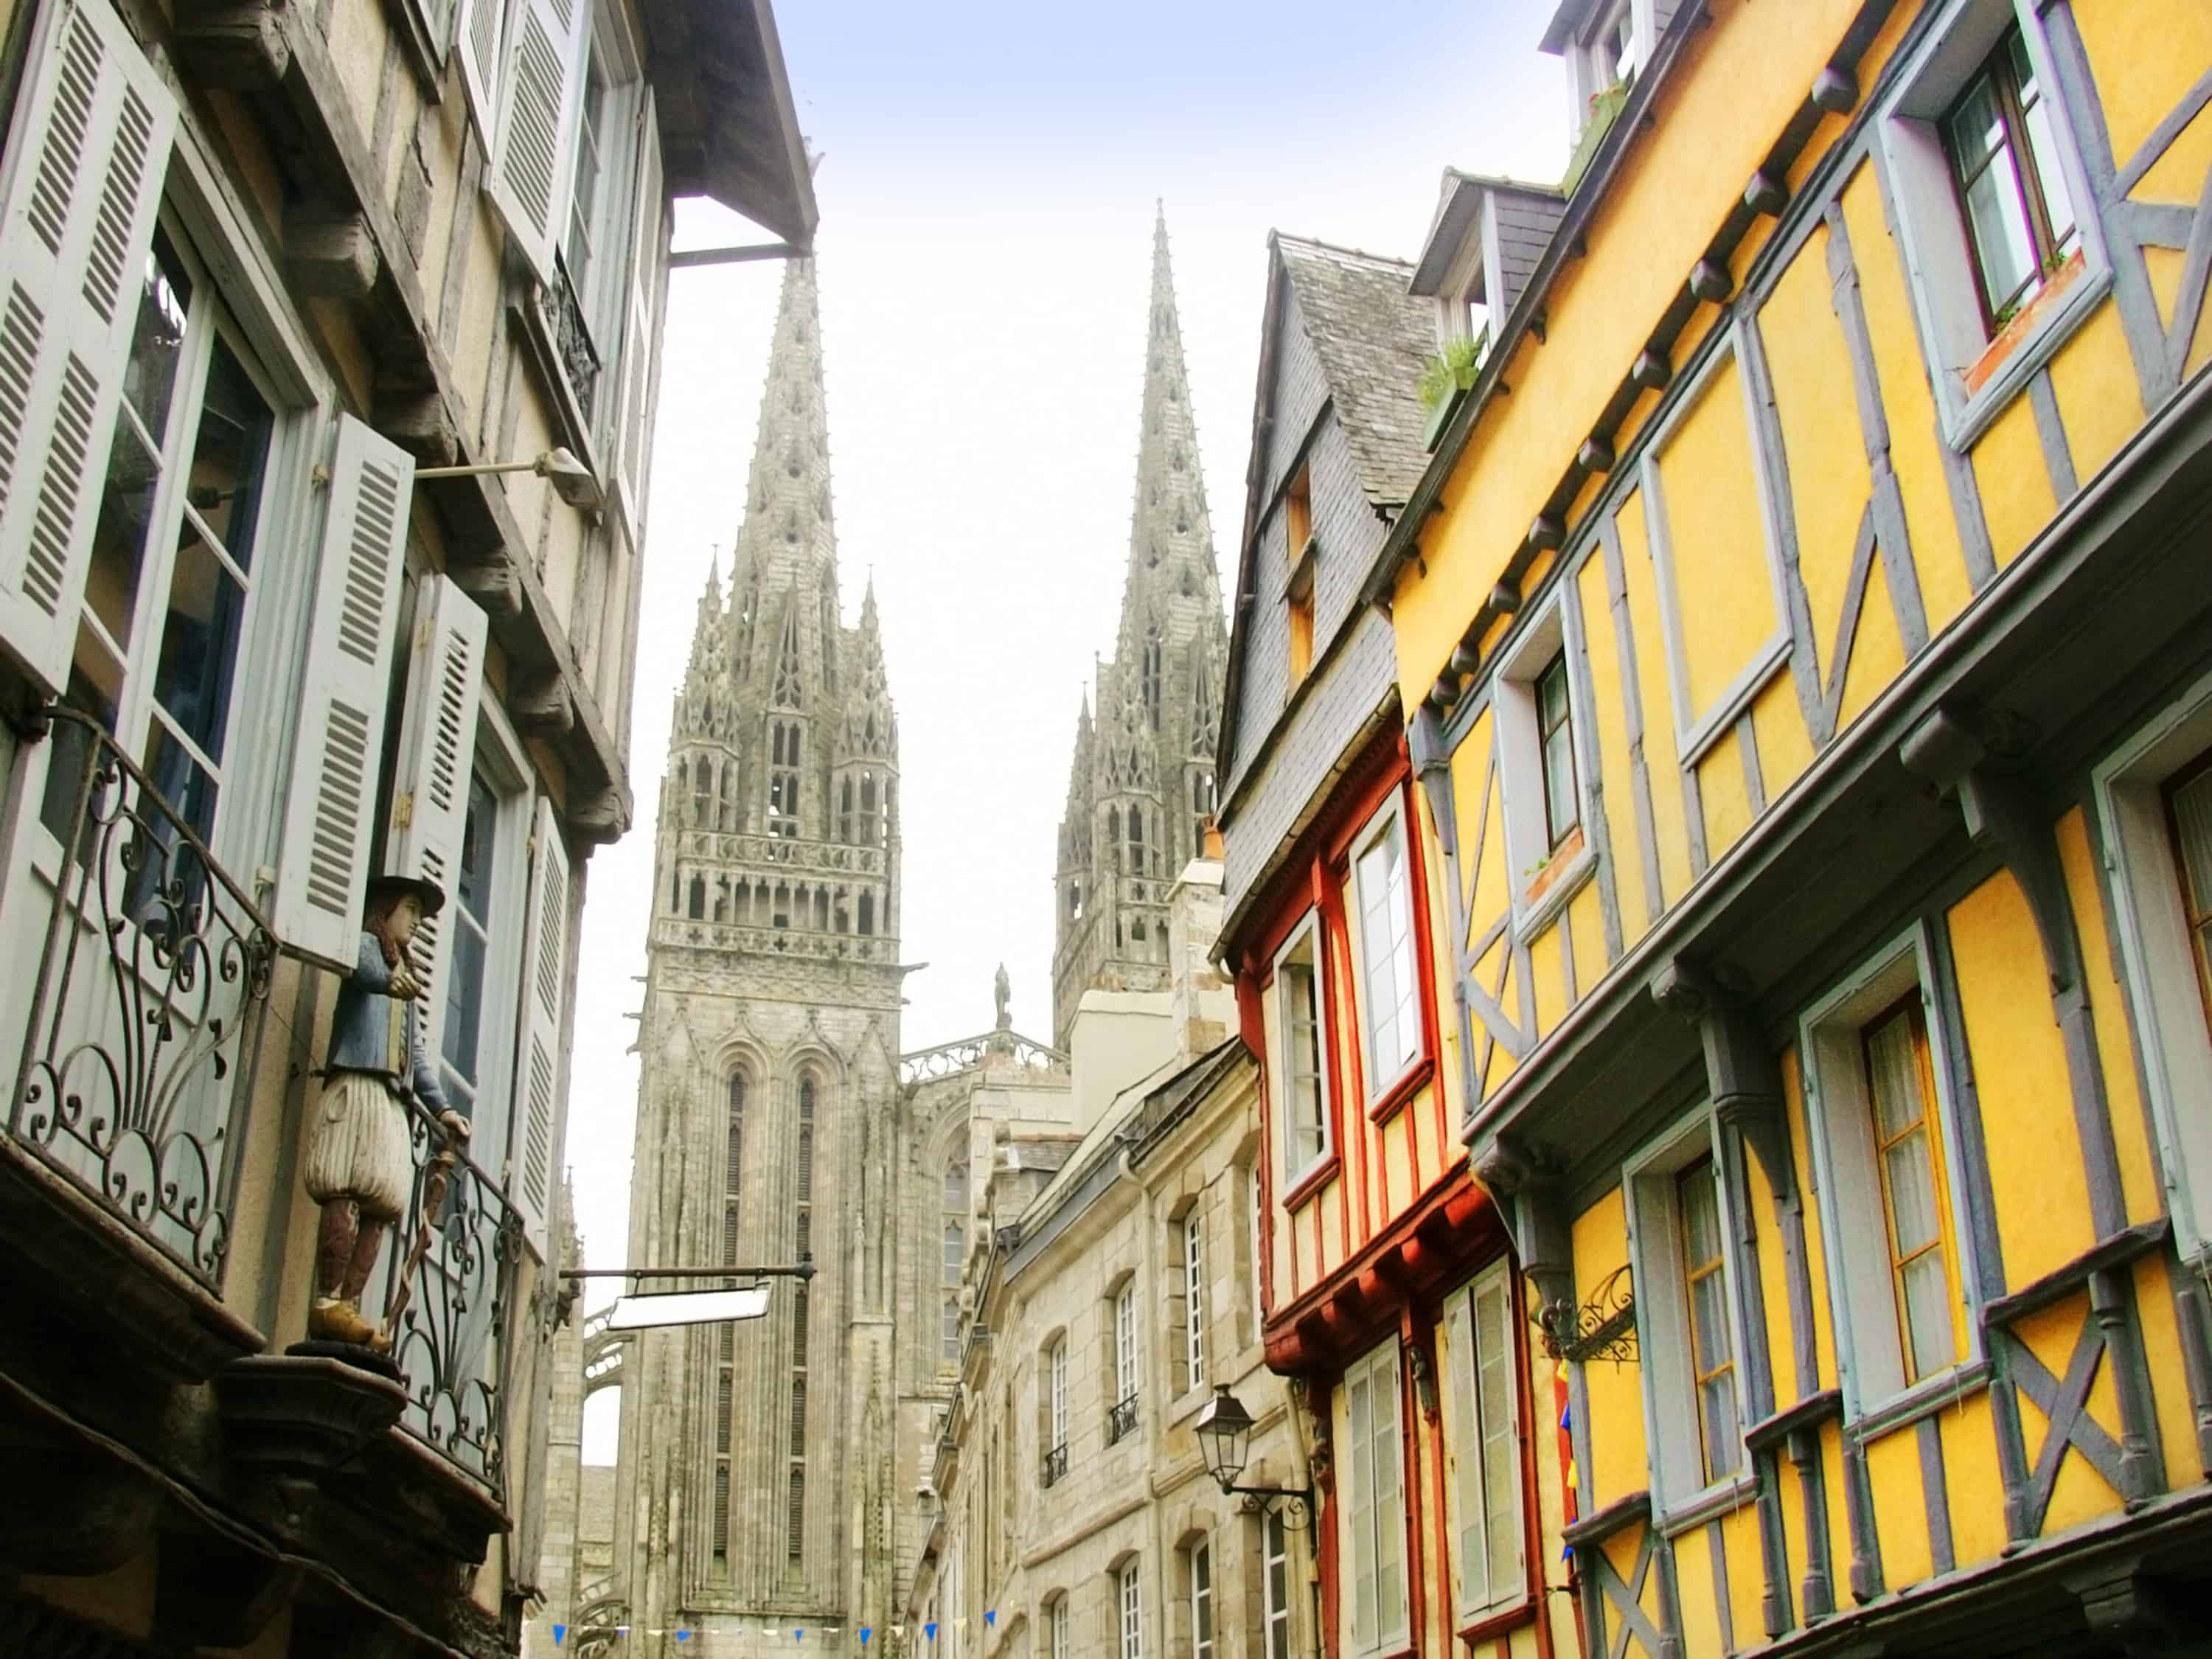 Quimper Is A Gem Among Stones in Northern France